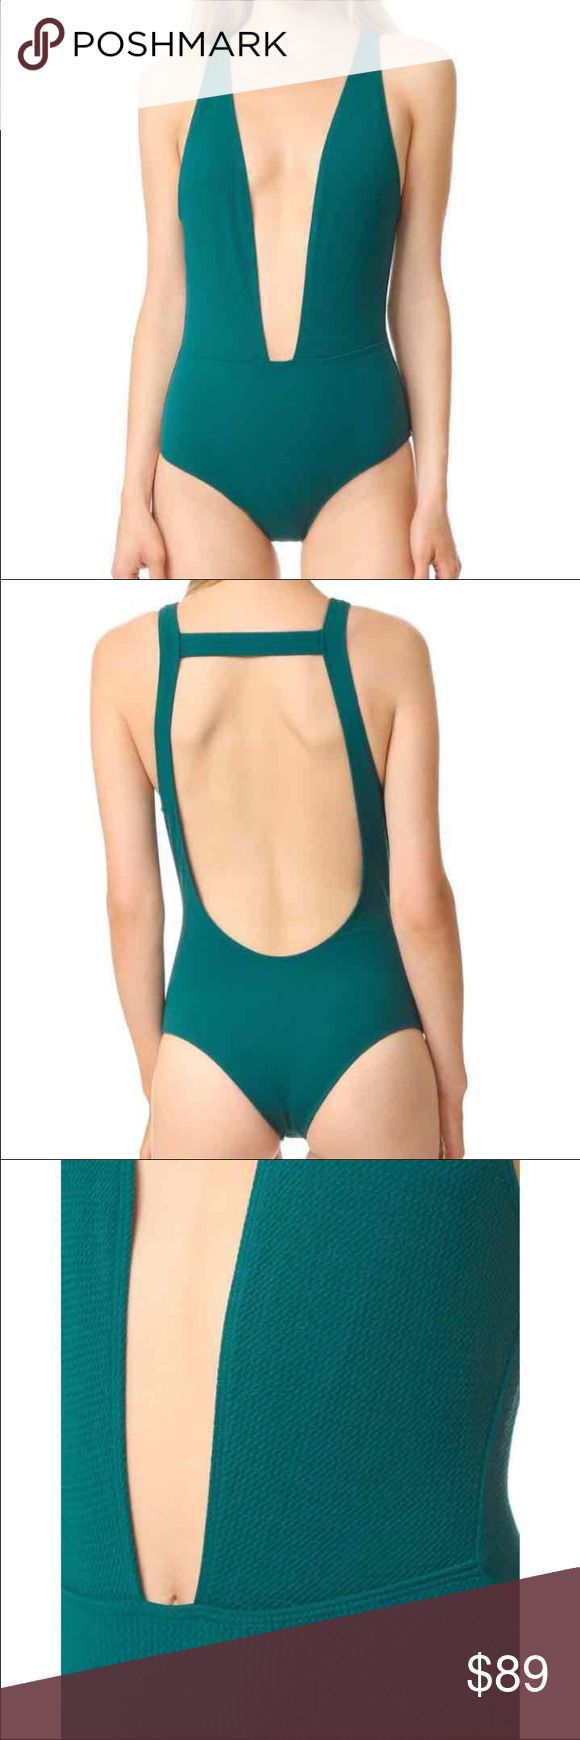 Beach Riot Willow One Piece in Forest Green Brand New with tags:   A plunging front cutout reveals a sexy glimpse of skin on this brazilian-cut Beach Riot swimsuit. Lined.  Retails: $130 •95% polyester/5% spandex. •Hand wash. •Made in the USA. Beach Riot Swim One Pieces